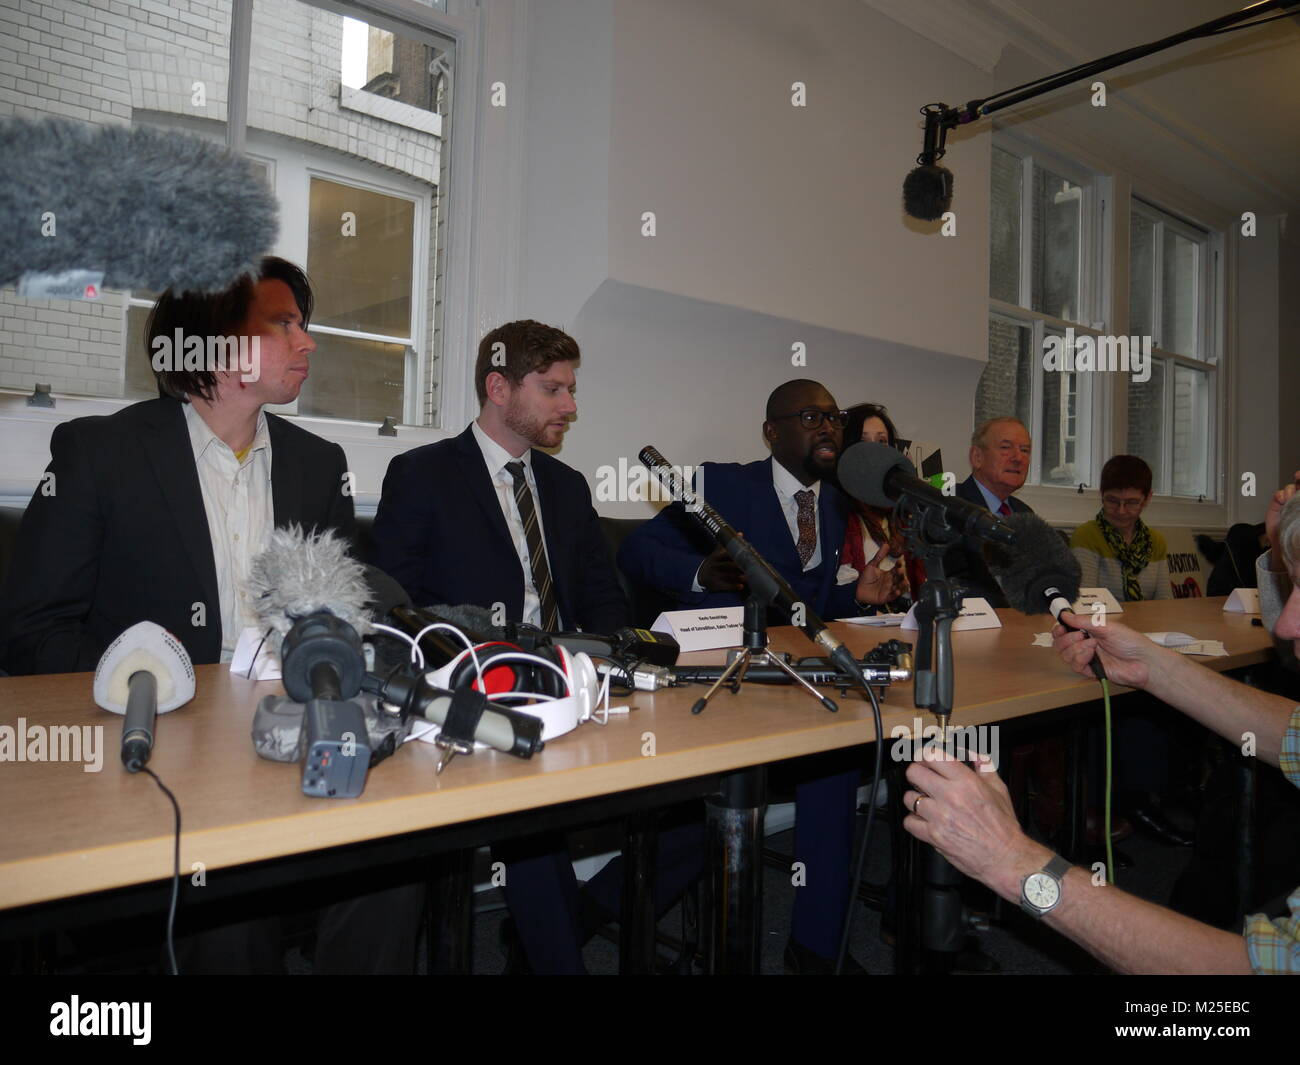 London, UK. 5th February, 2018. Lauri Love Wins Extradition Battle, London, UK. 5th February, 2018. Lauri Love wins Stock Photo